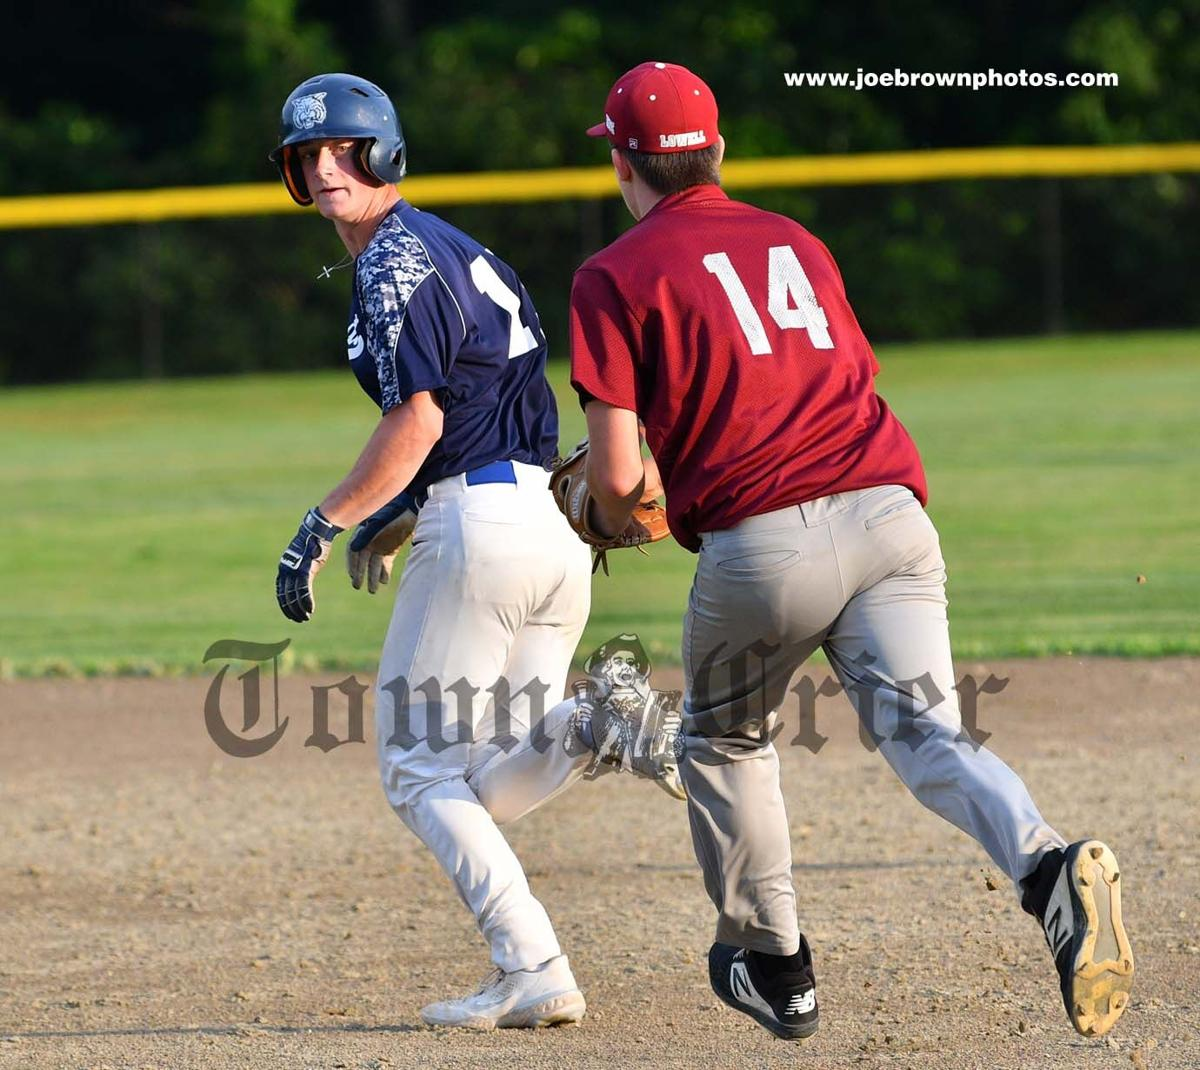 Wilmington's Matt Vinal is chased by Lowell's Jack Soucy